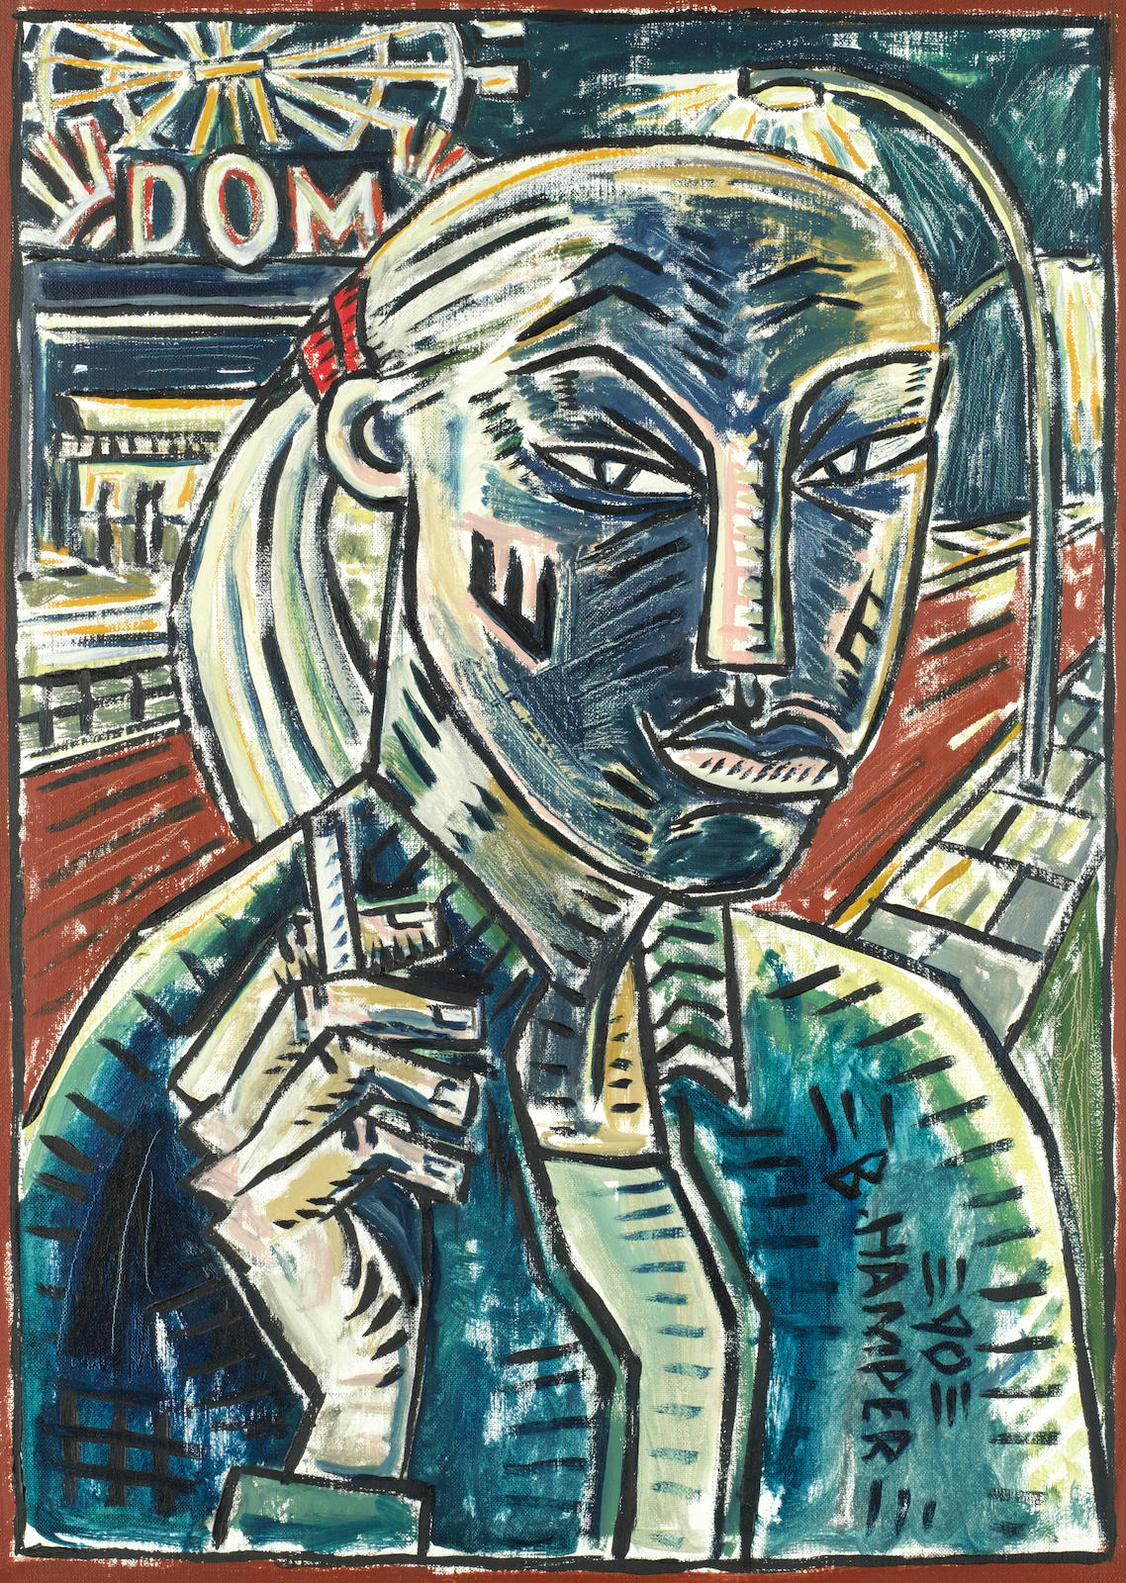 Billy Childish - At The Dom-1990